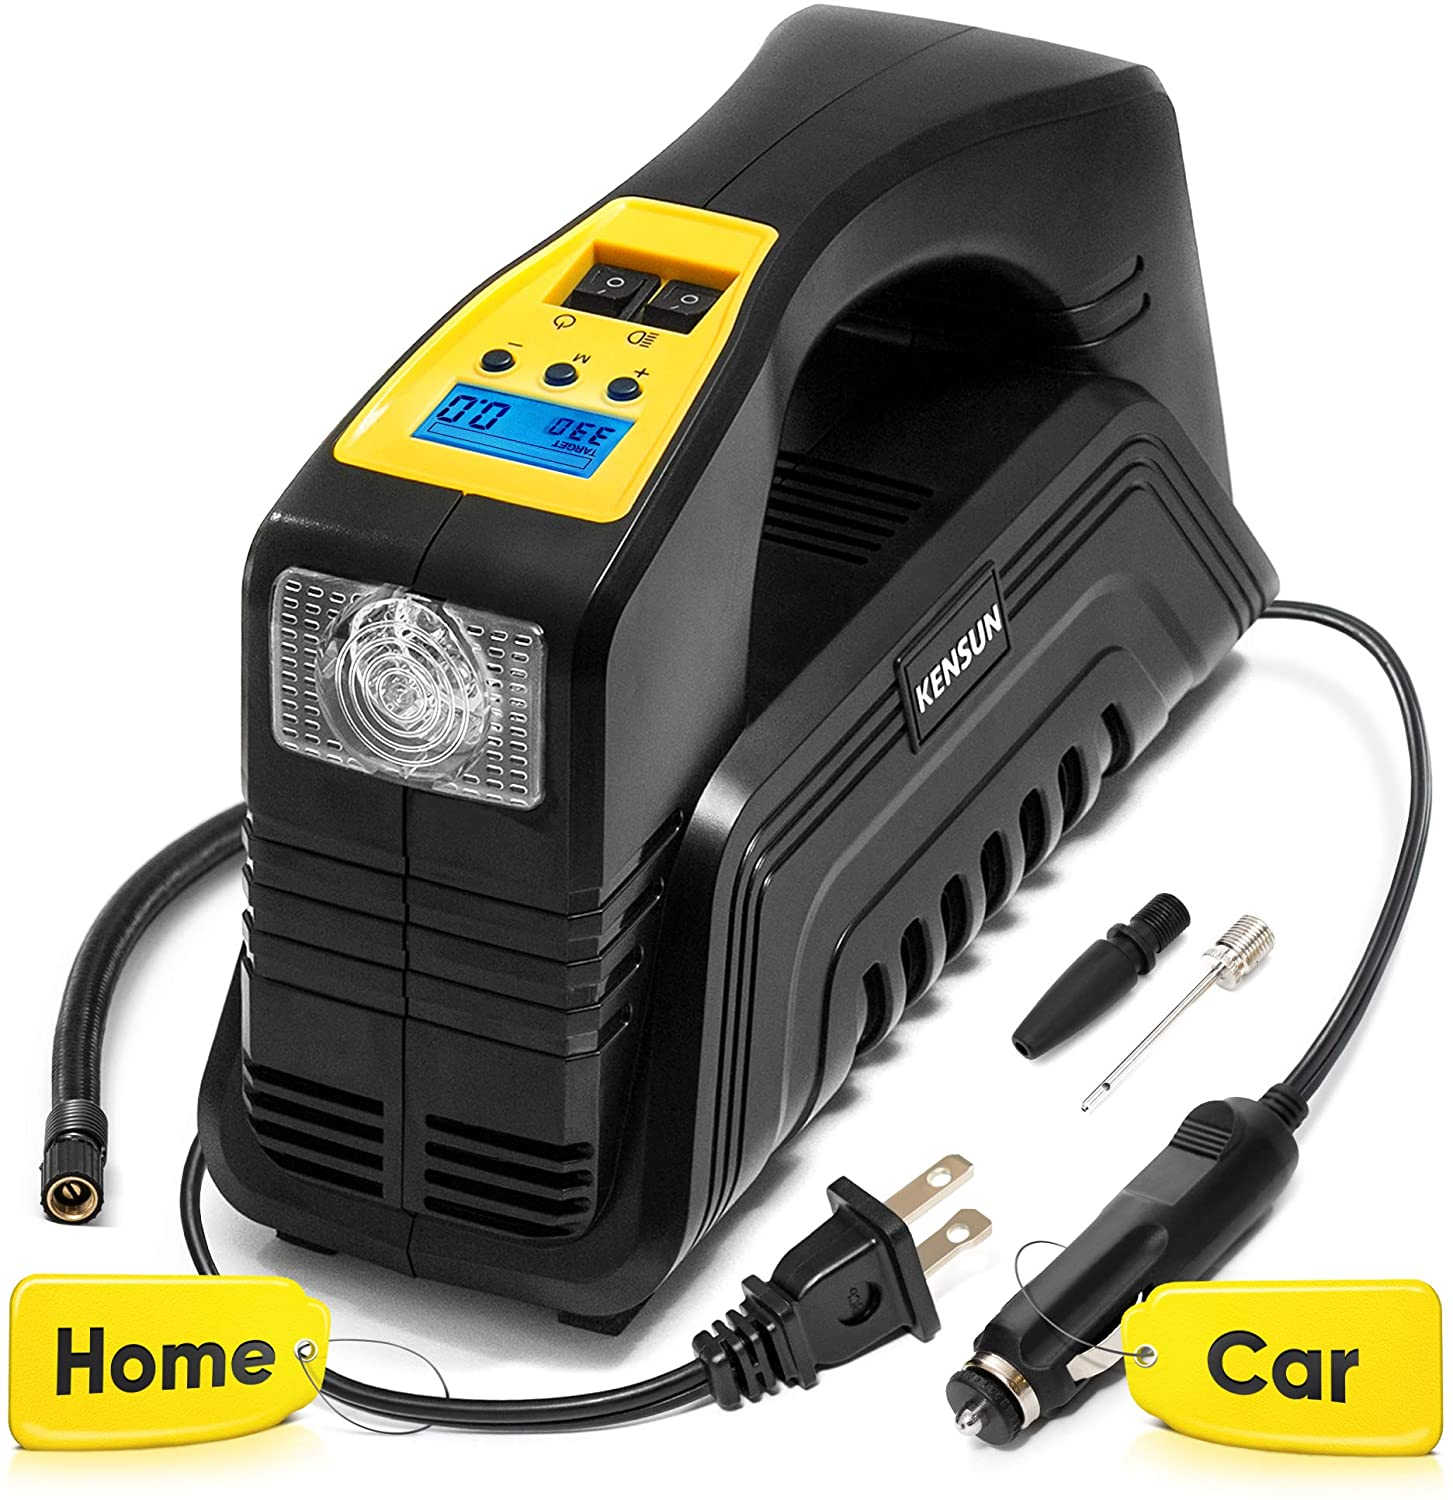 Kensun Digital Tire Inflator